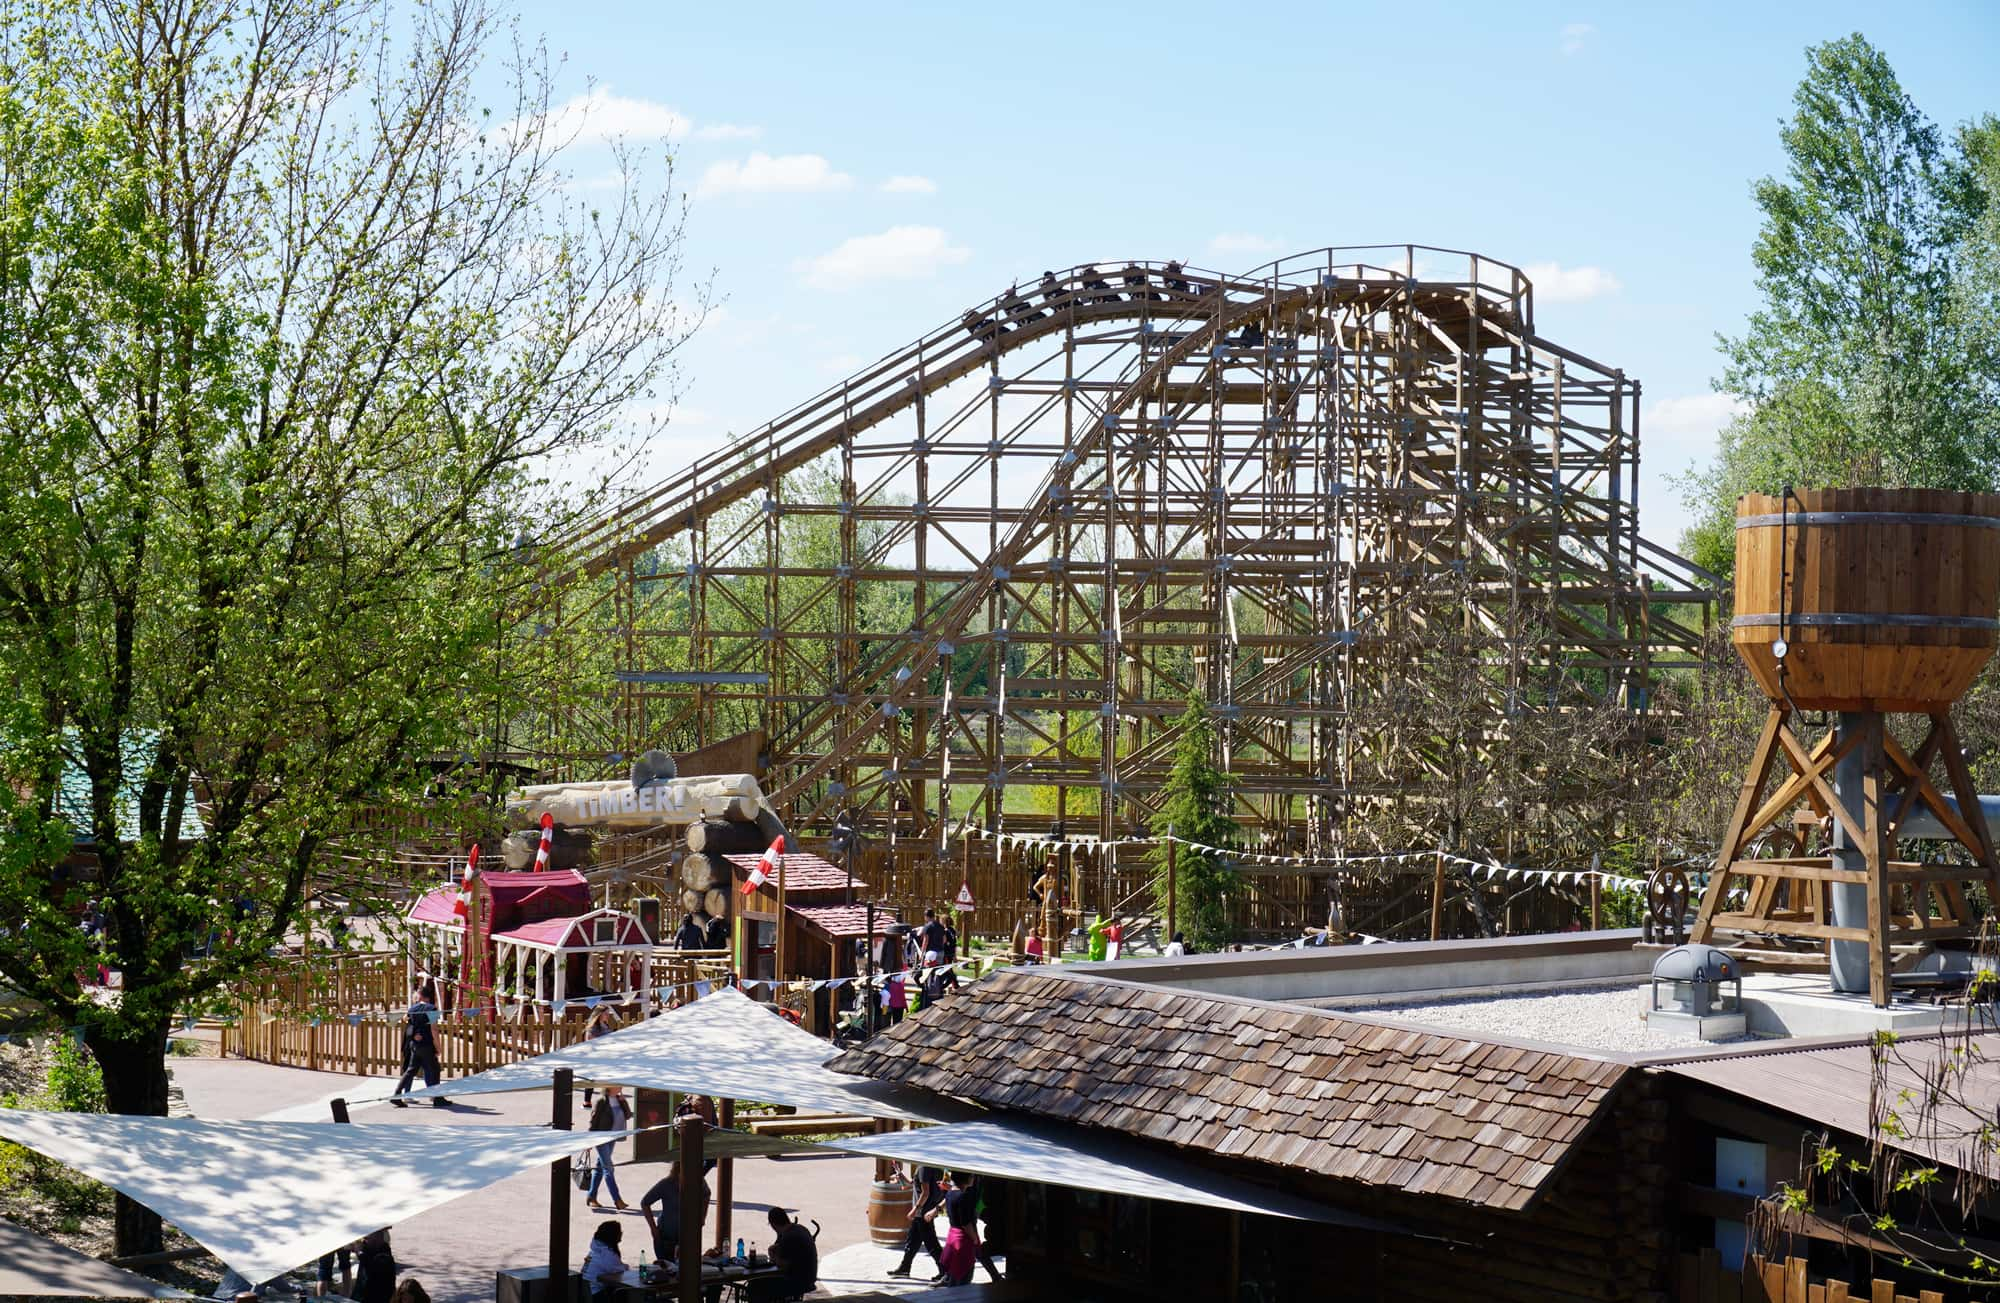 Parc Walibi Rhône-Alpes : Explorer Adventure, l'attraction Timber